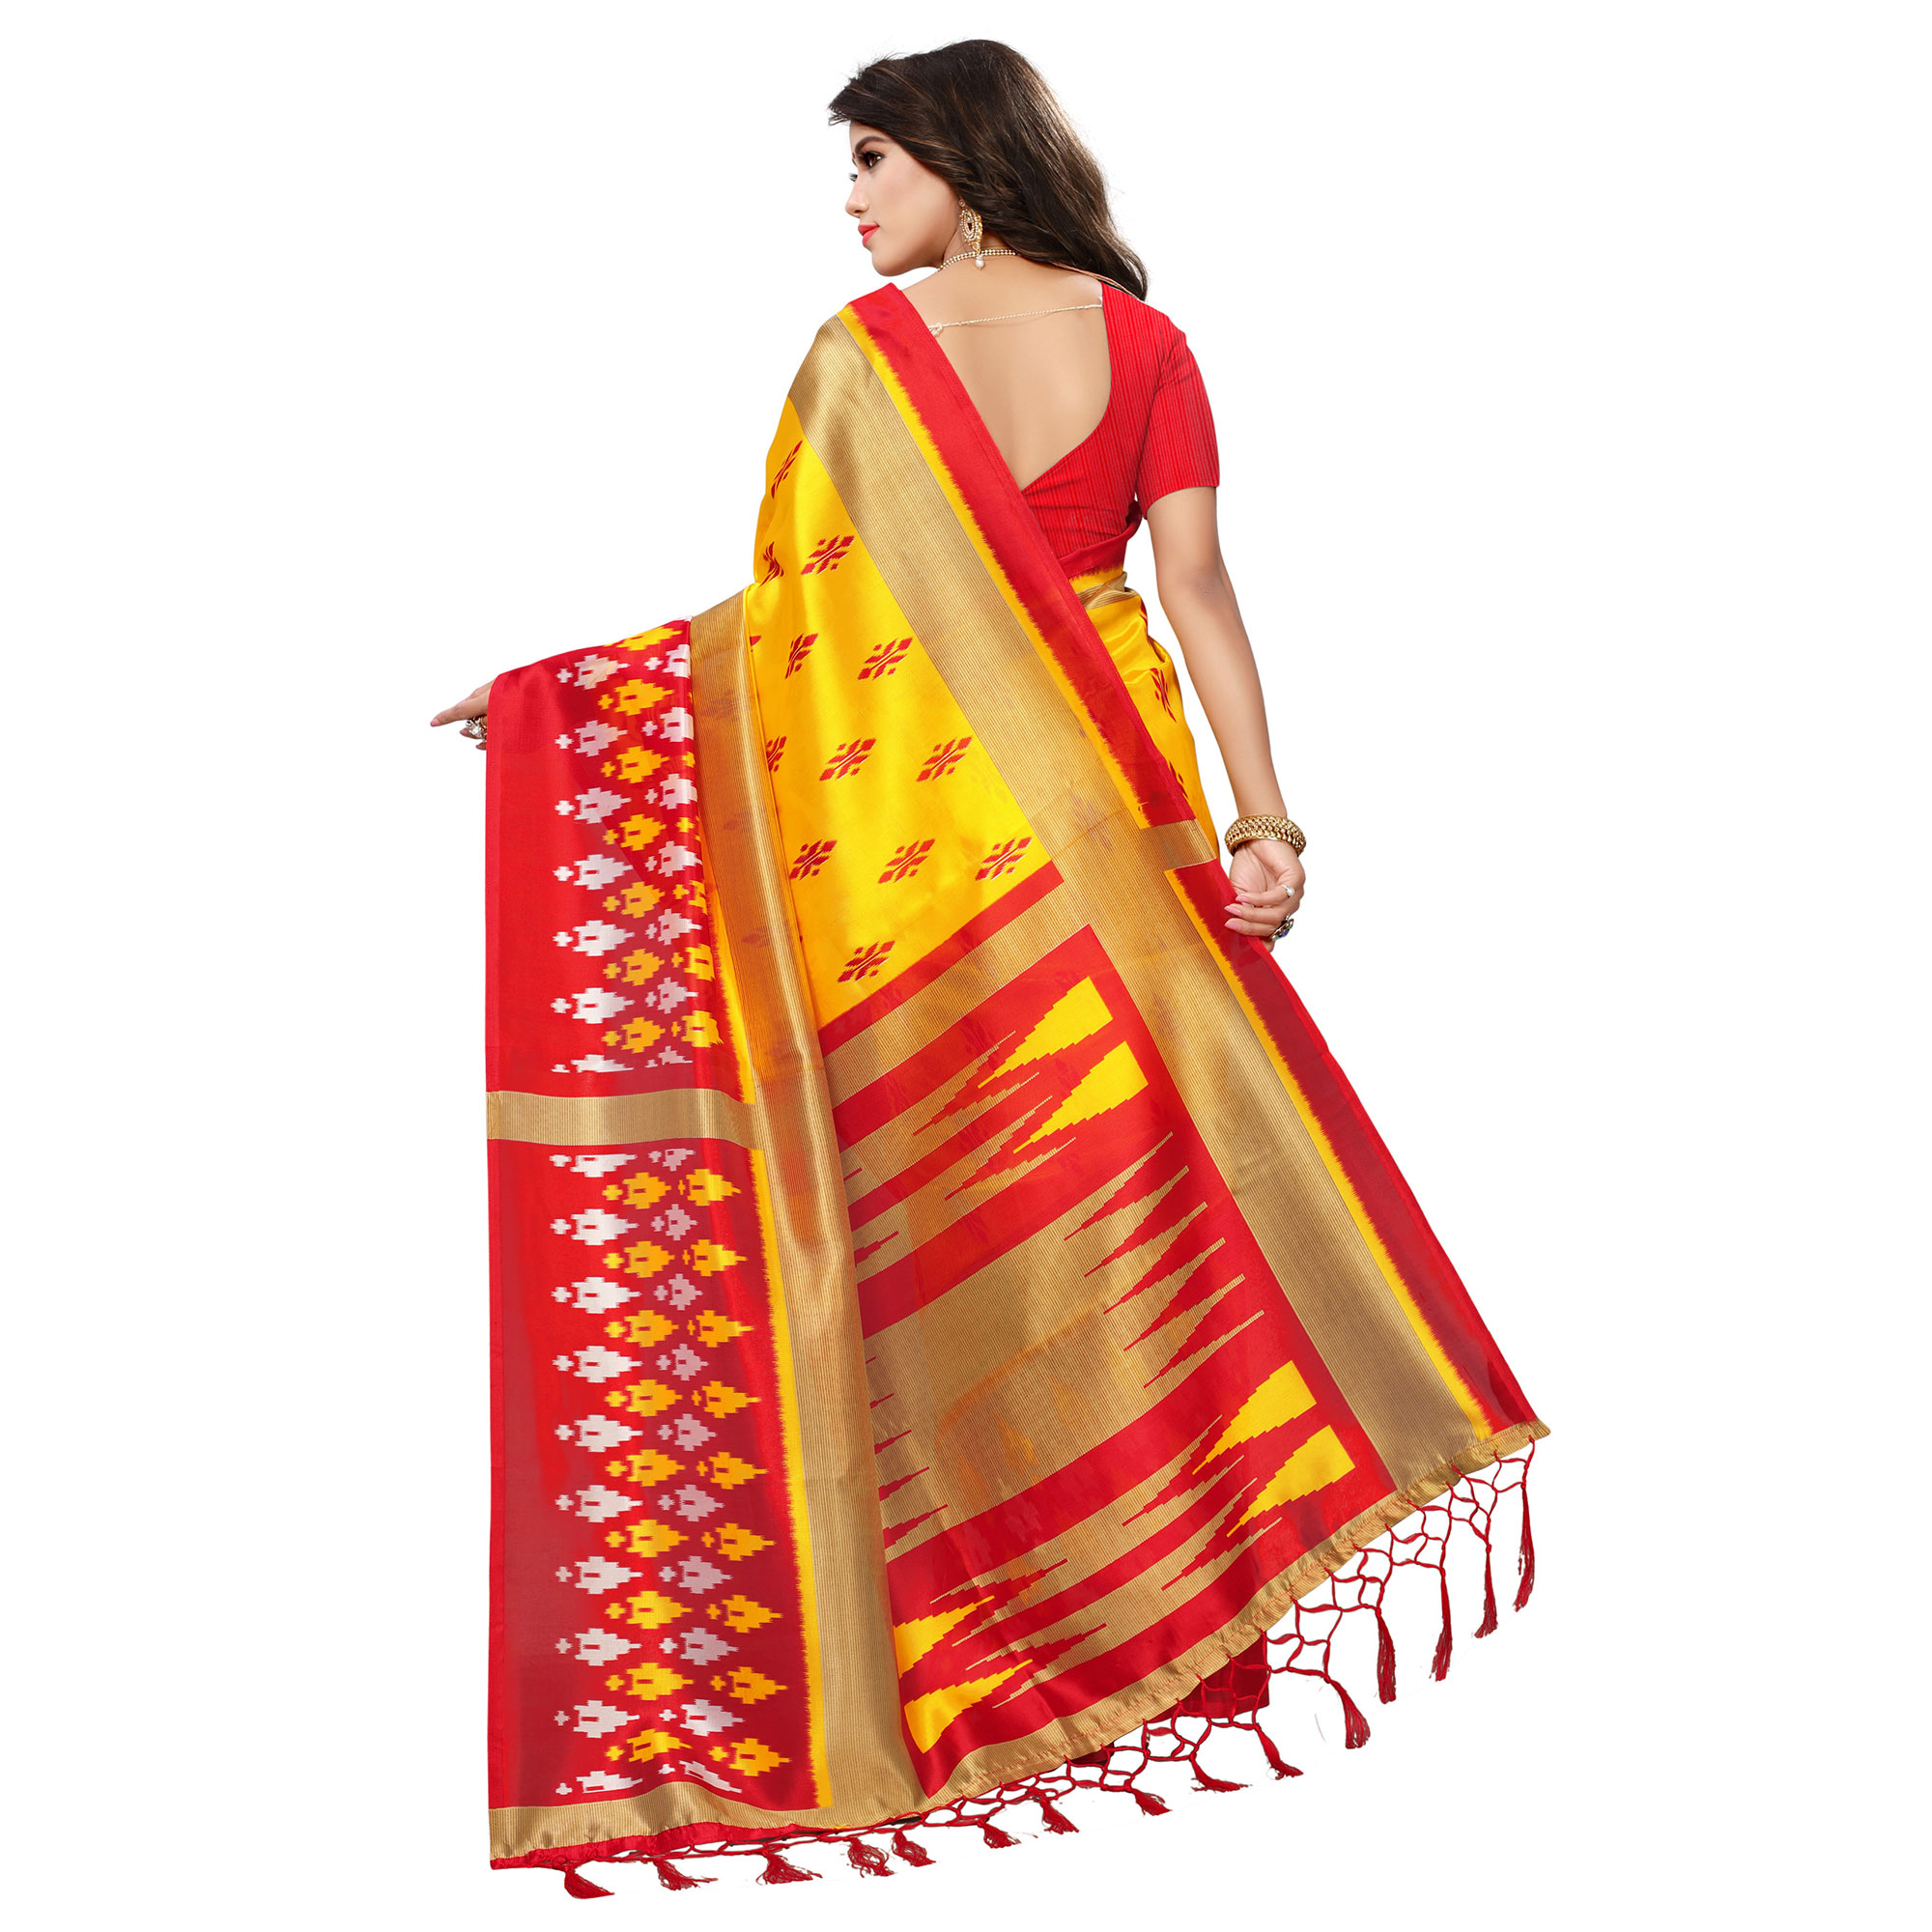 Outstanding Yellow-Red Colored Printed Festive Wear Mysore Art Silk Saree